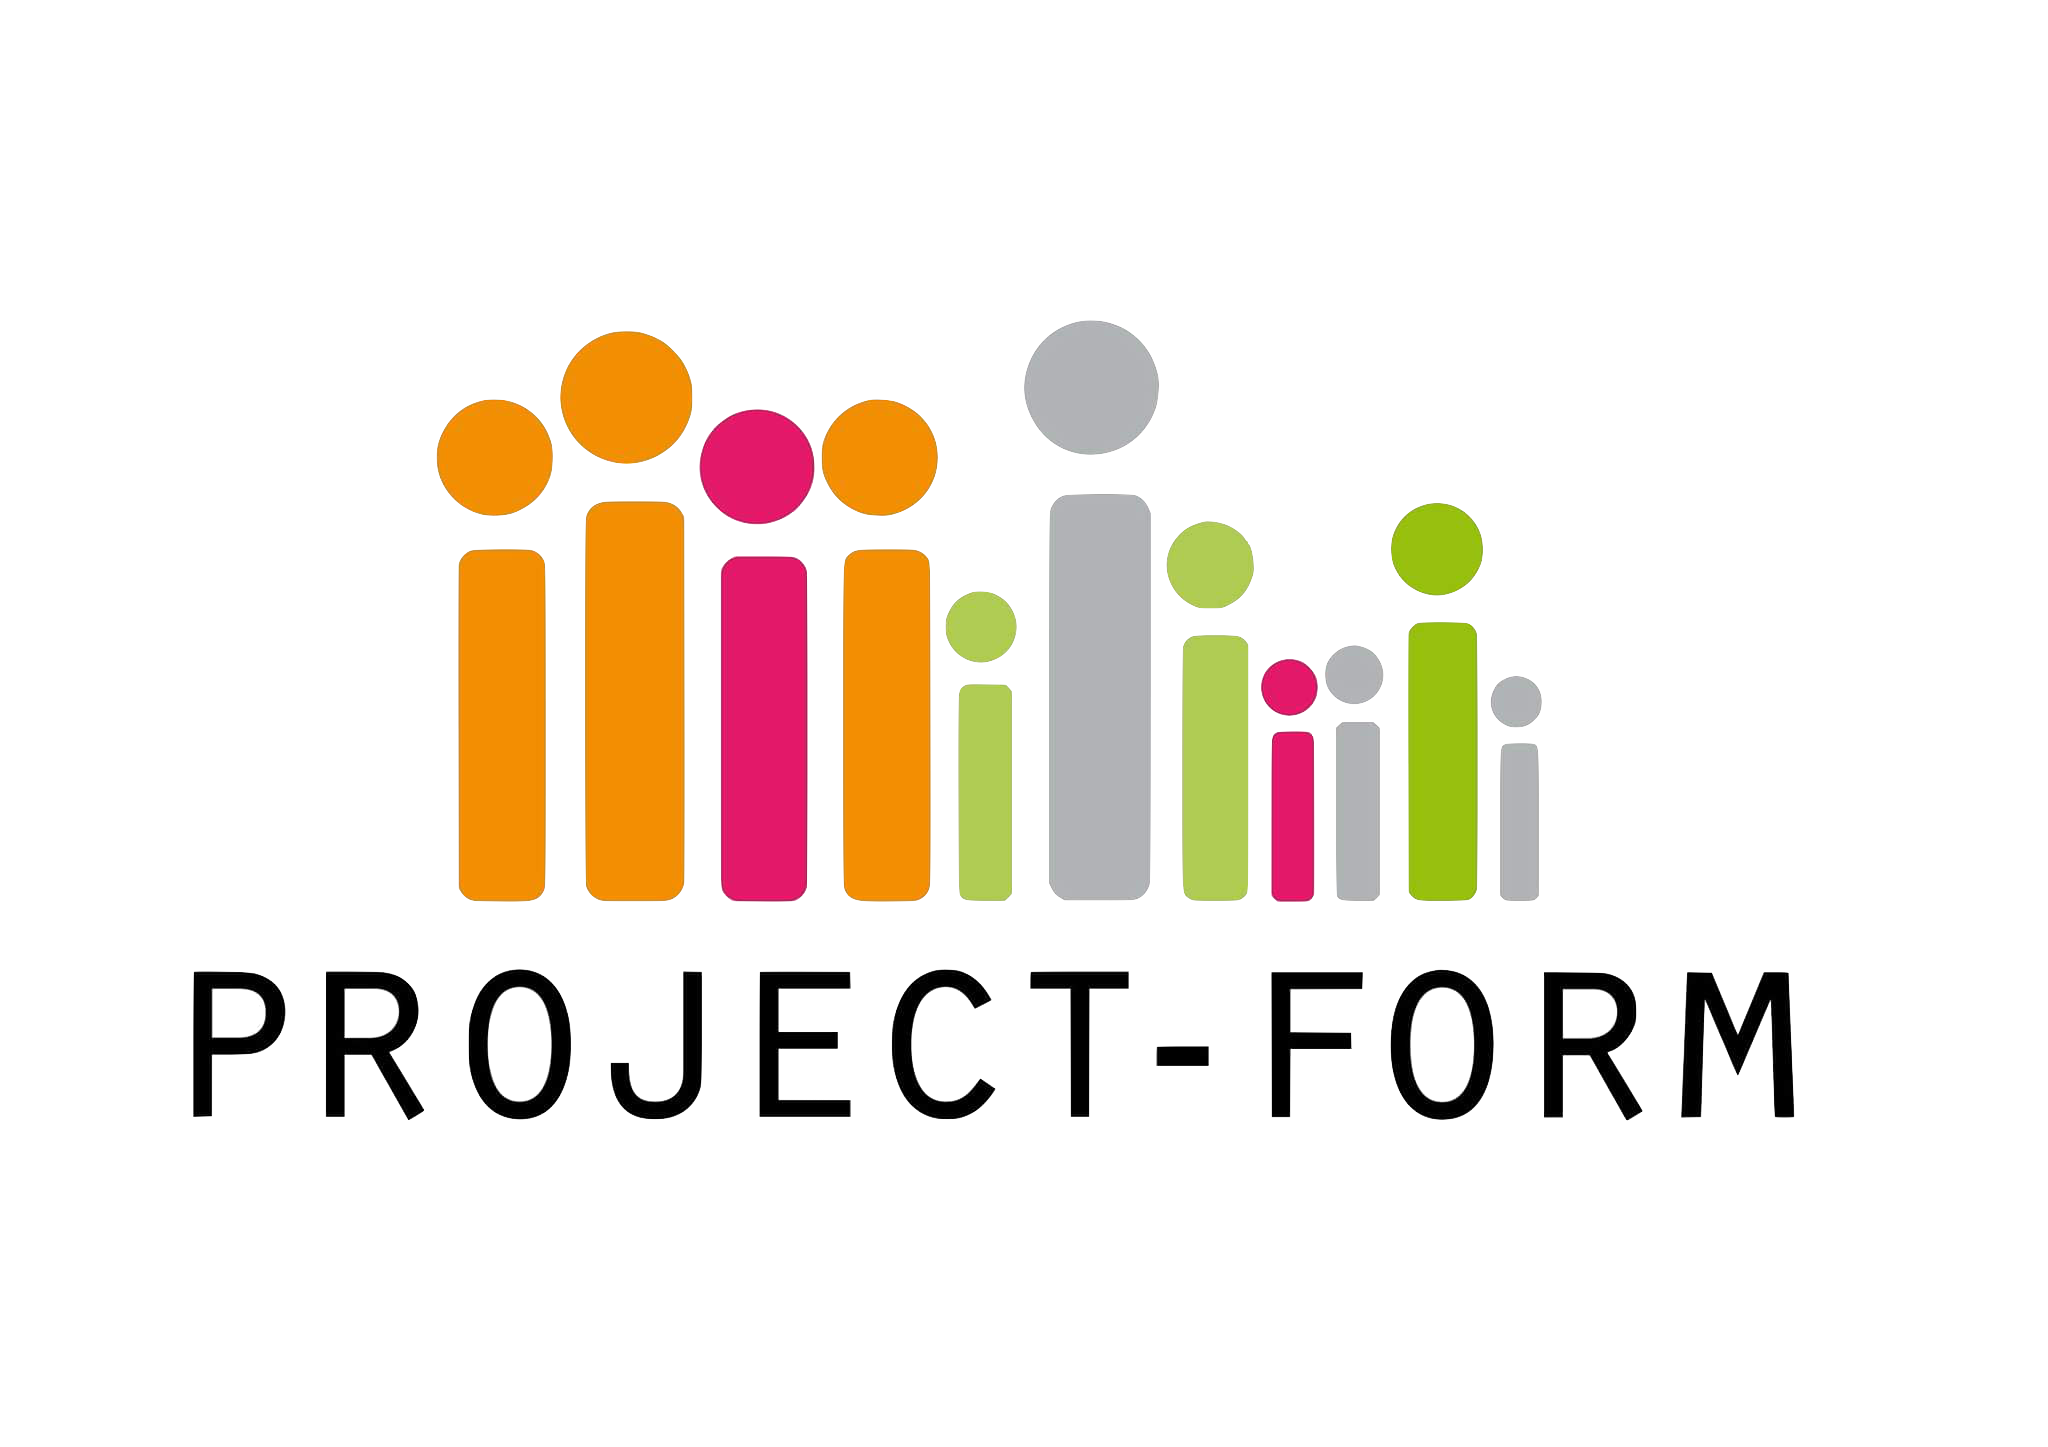 Project-Form